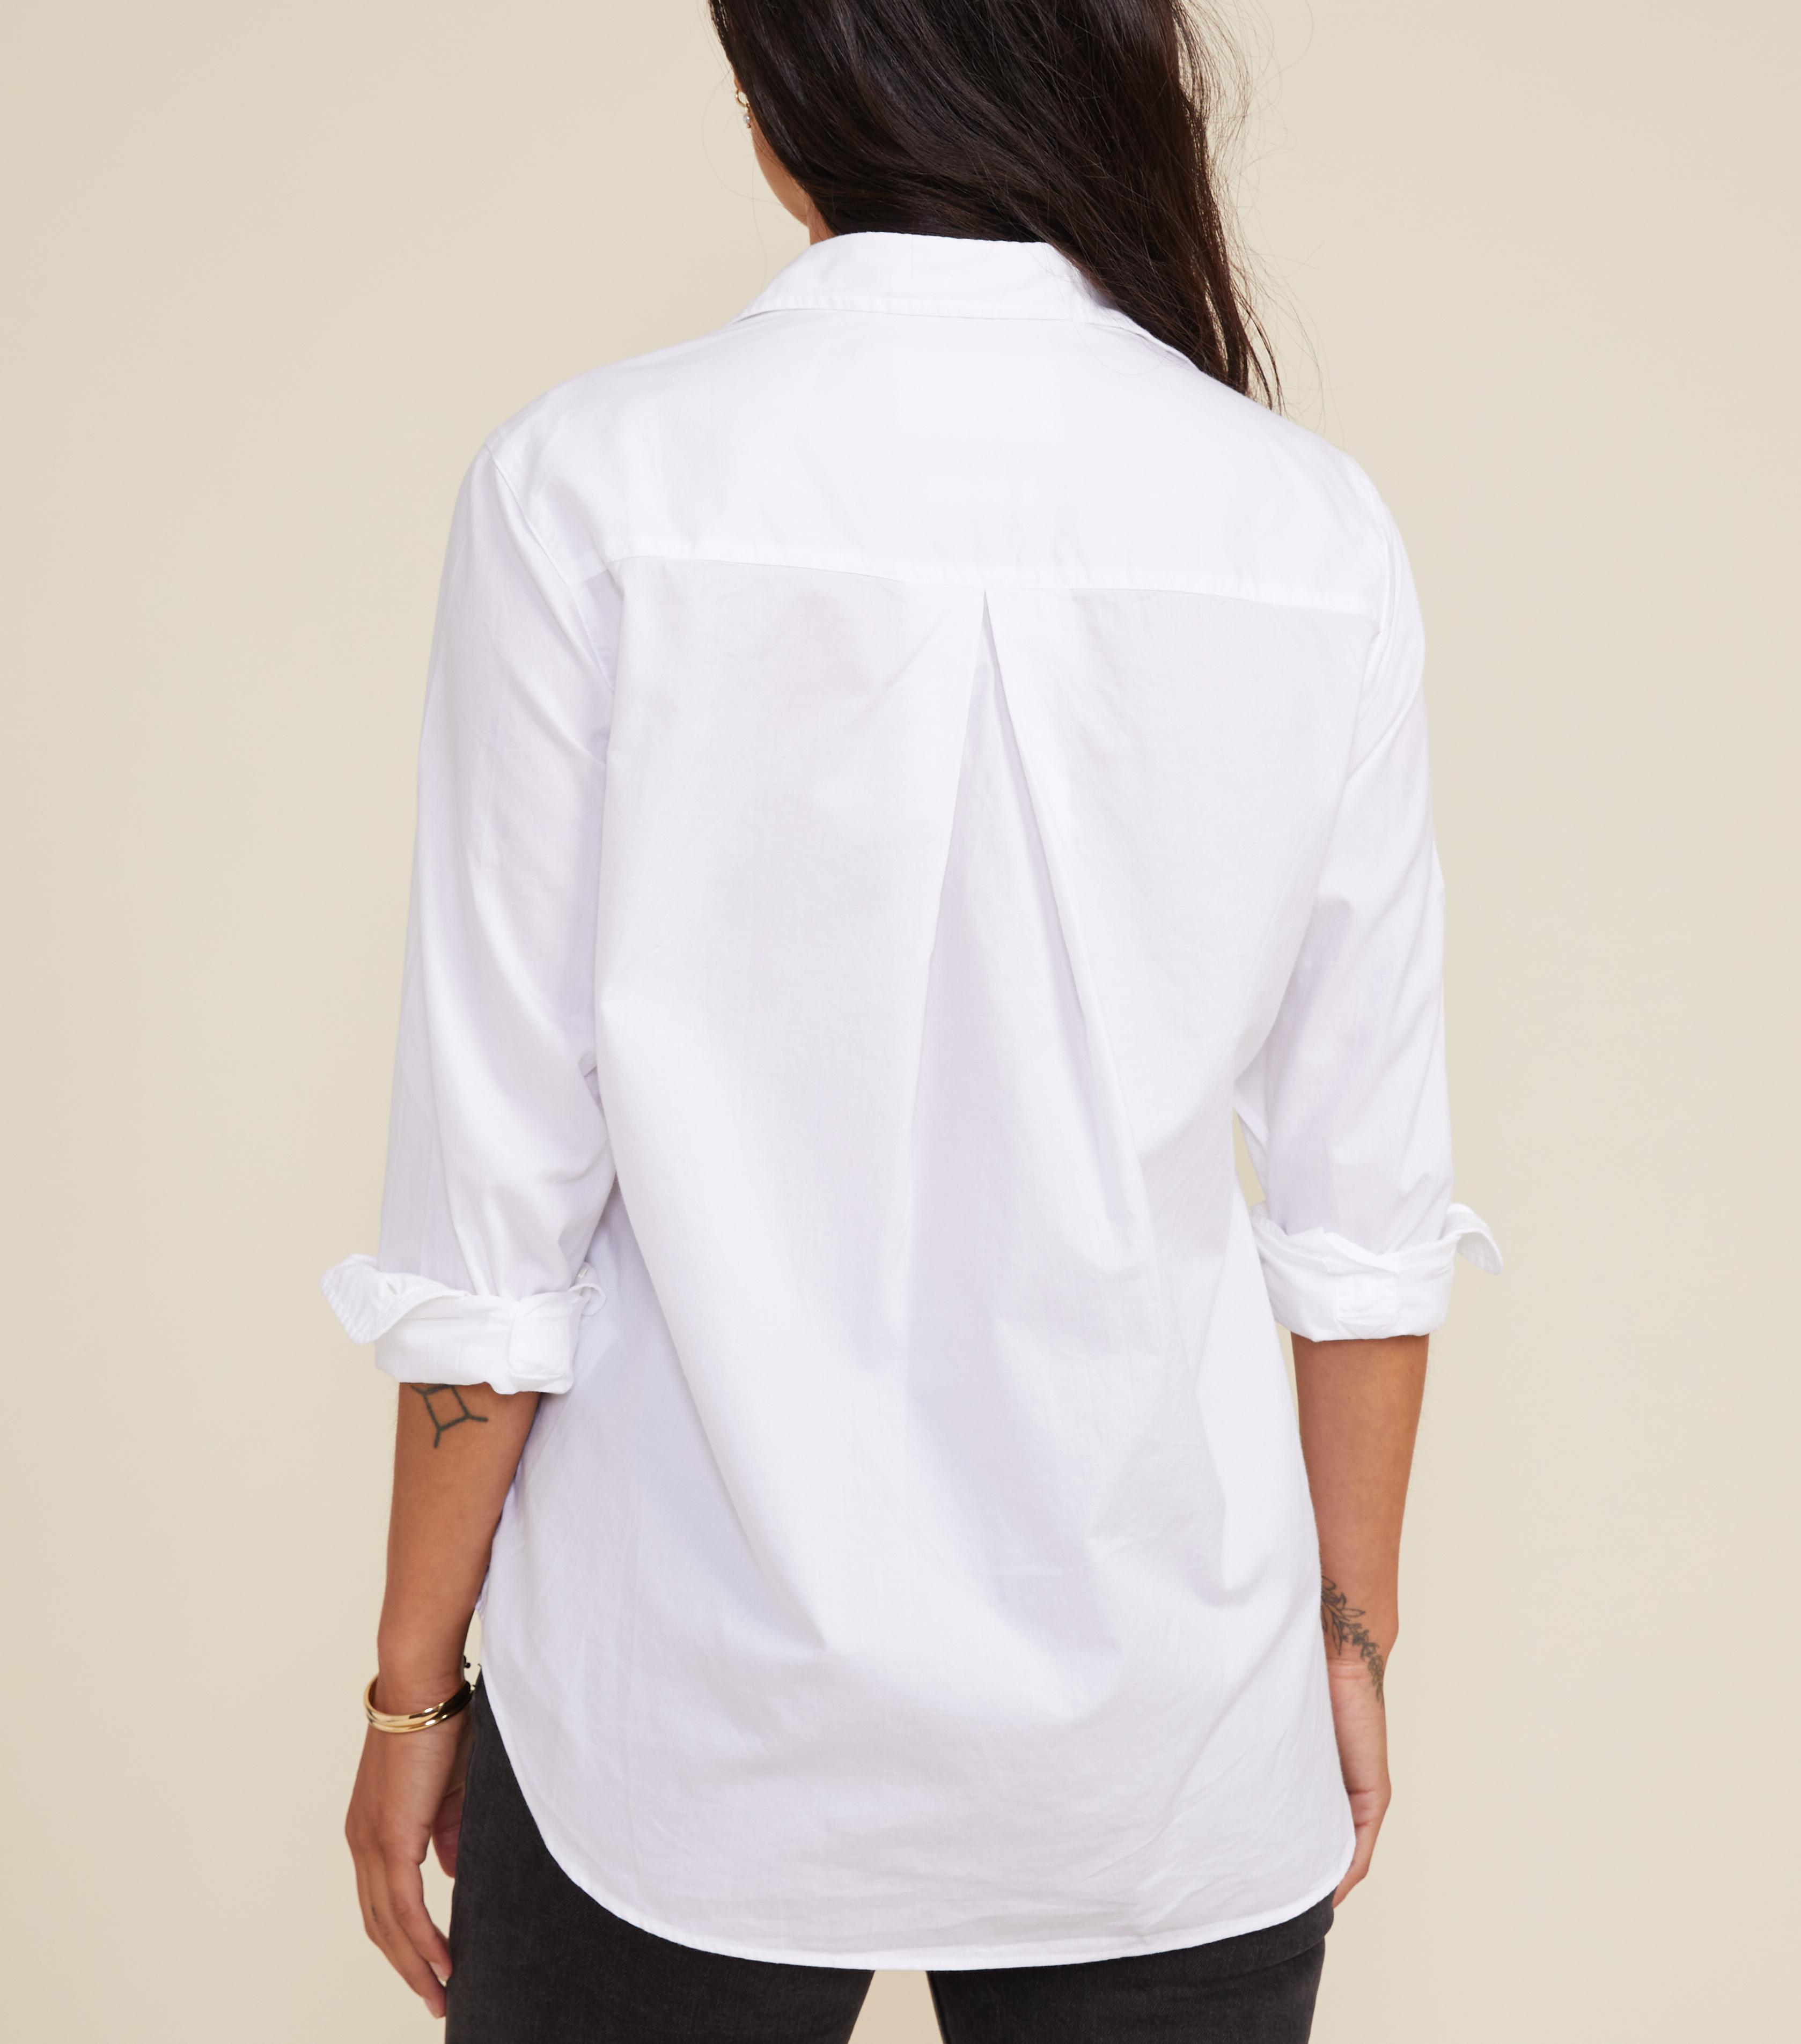 The Hero Button-Up Shirt Passionate, Brushed Cotton 1